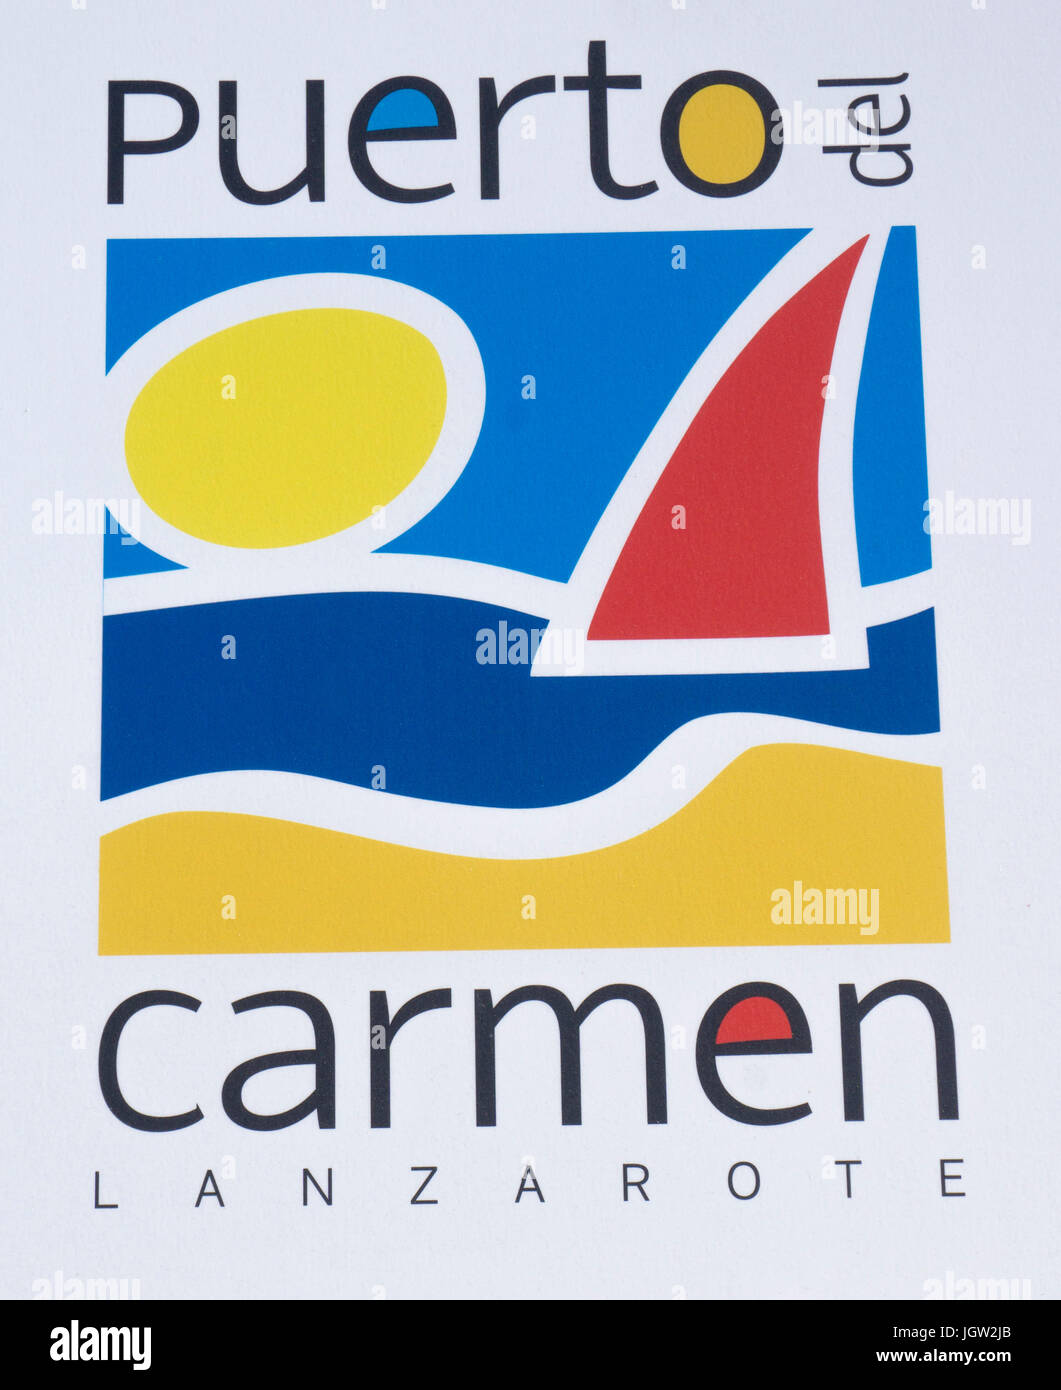 Logo of Puerto del Carmen, touristic town on Lanzarote island, Canary islands, Spain, Europe - Stock Image